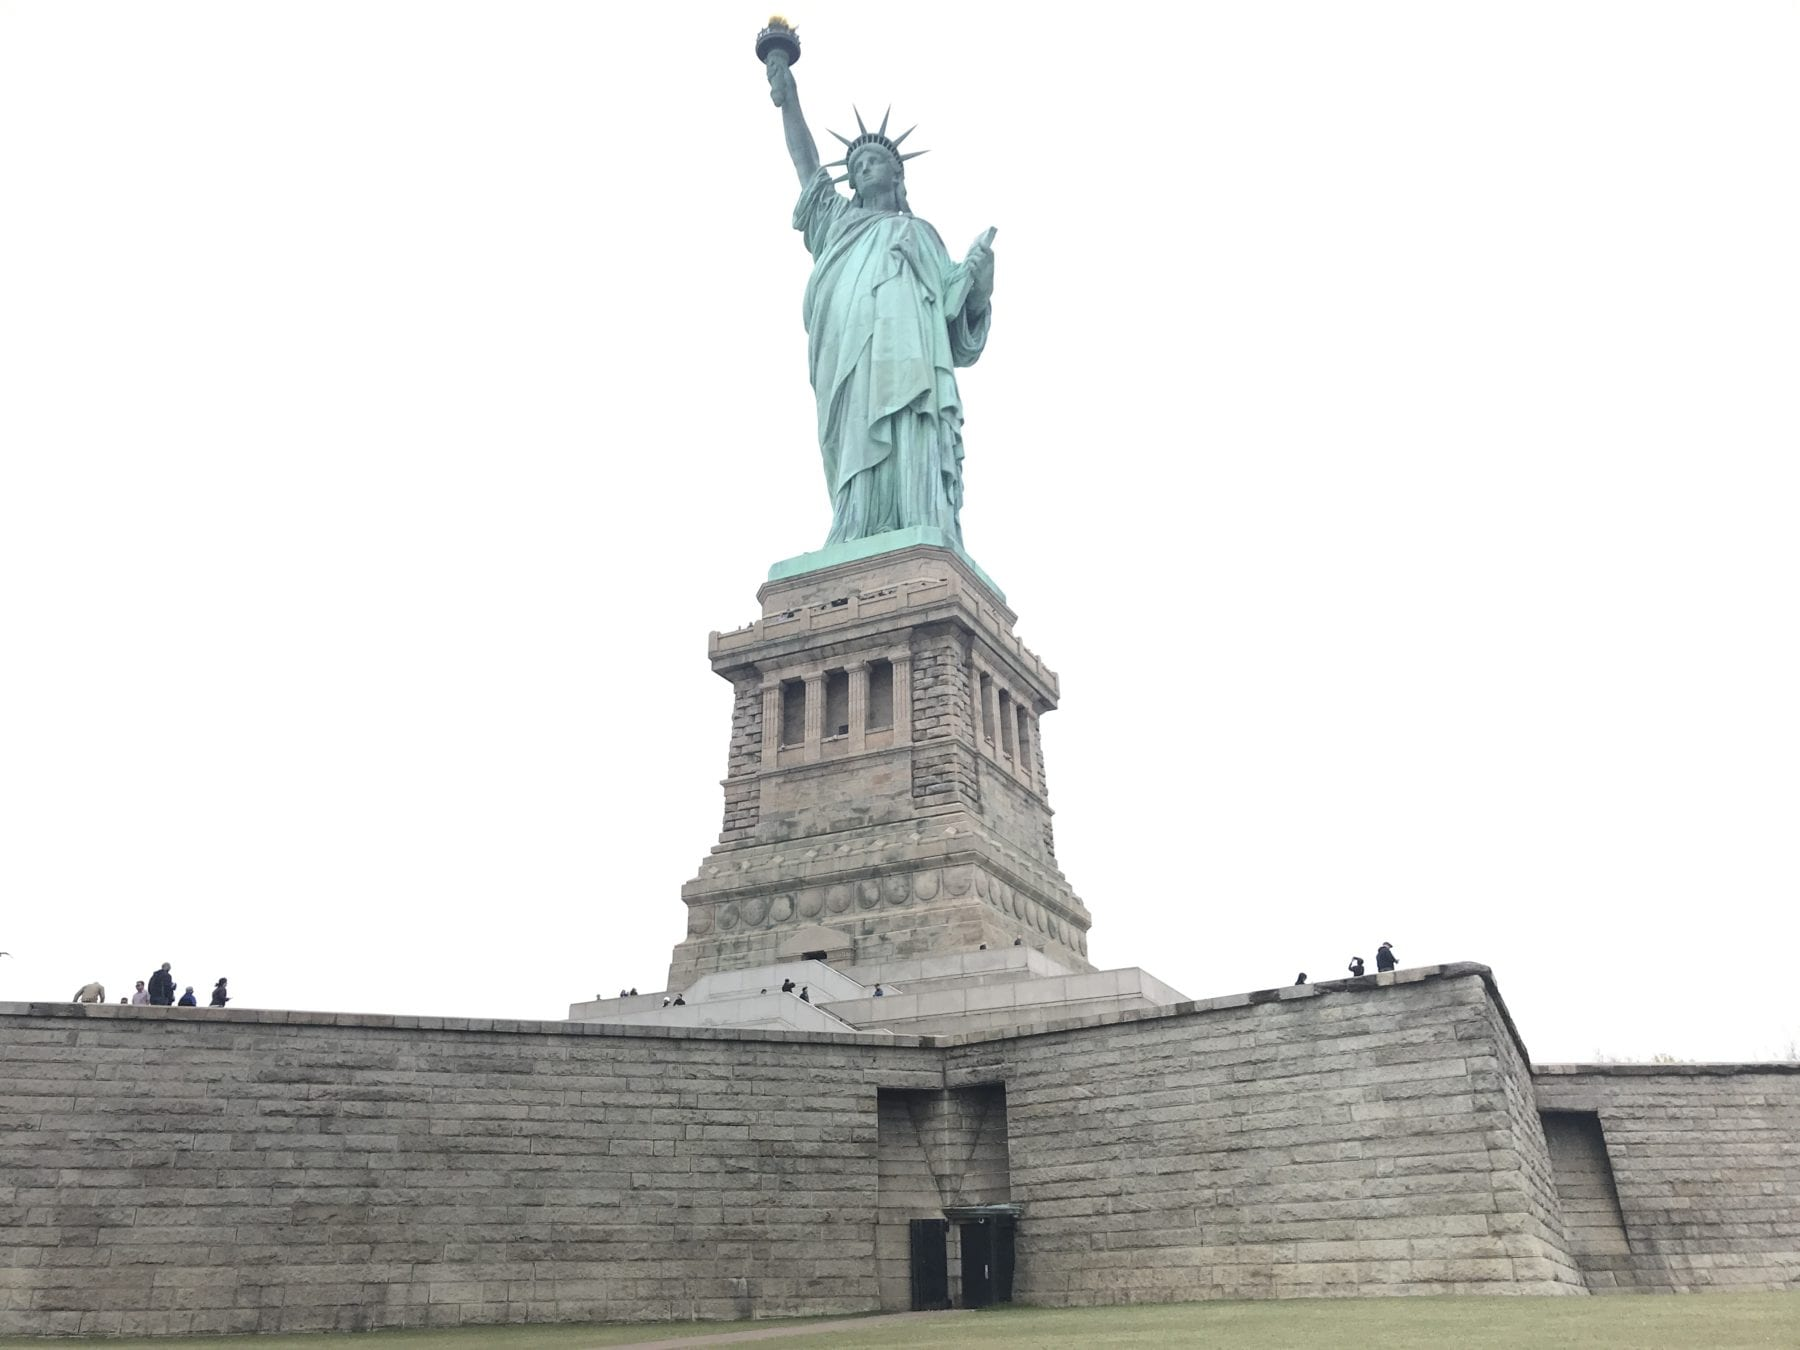 East Coast Historical Site - Statue of Liberty